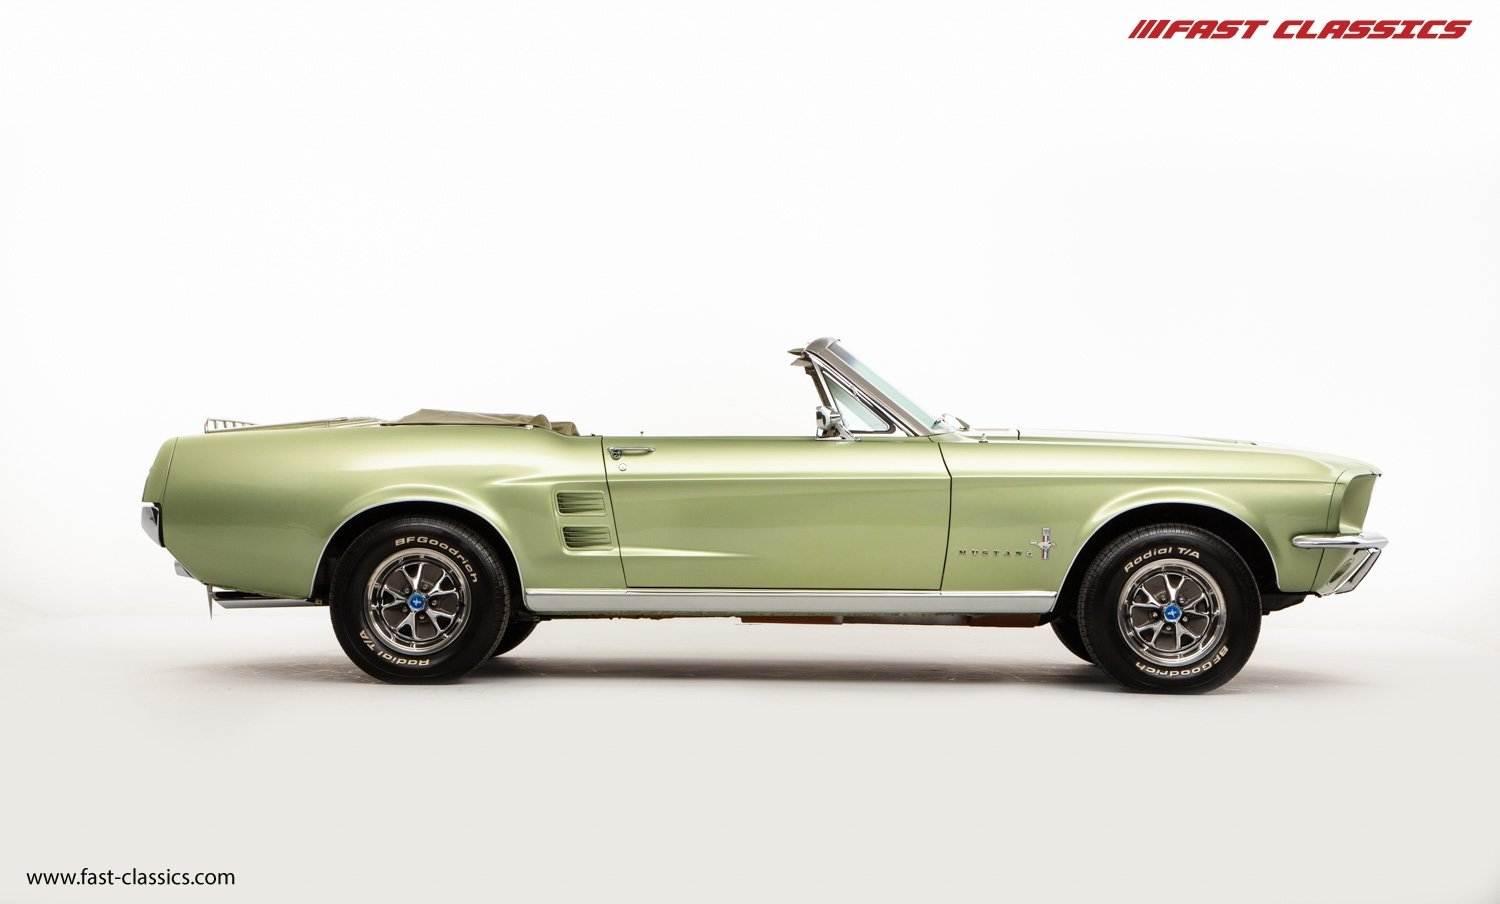 FORD MUSTANG CONVERTIBLE // 1967 FACTORY 4-SPEED MANUAL For Sale (picture 1 of 23)